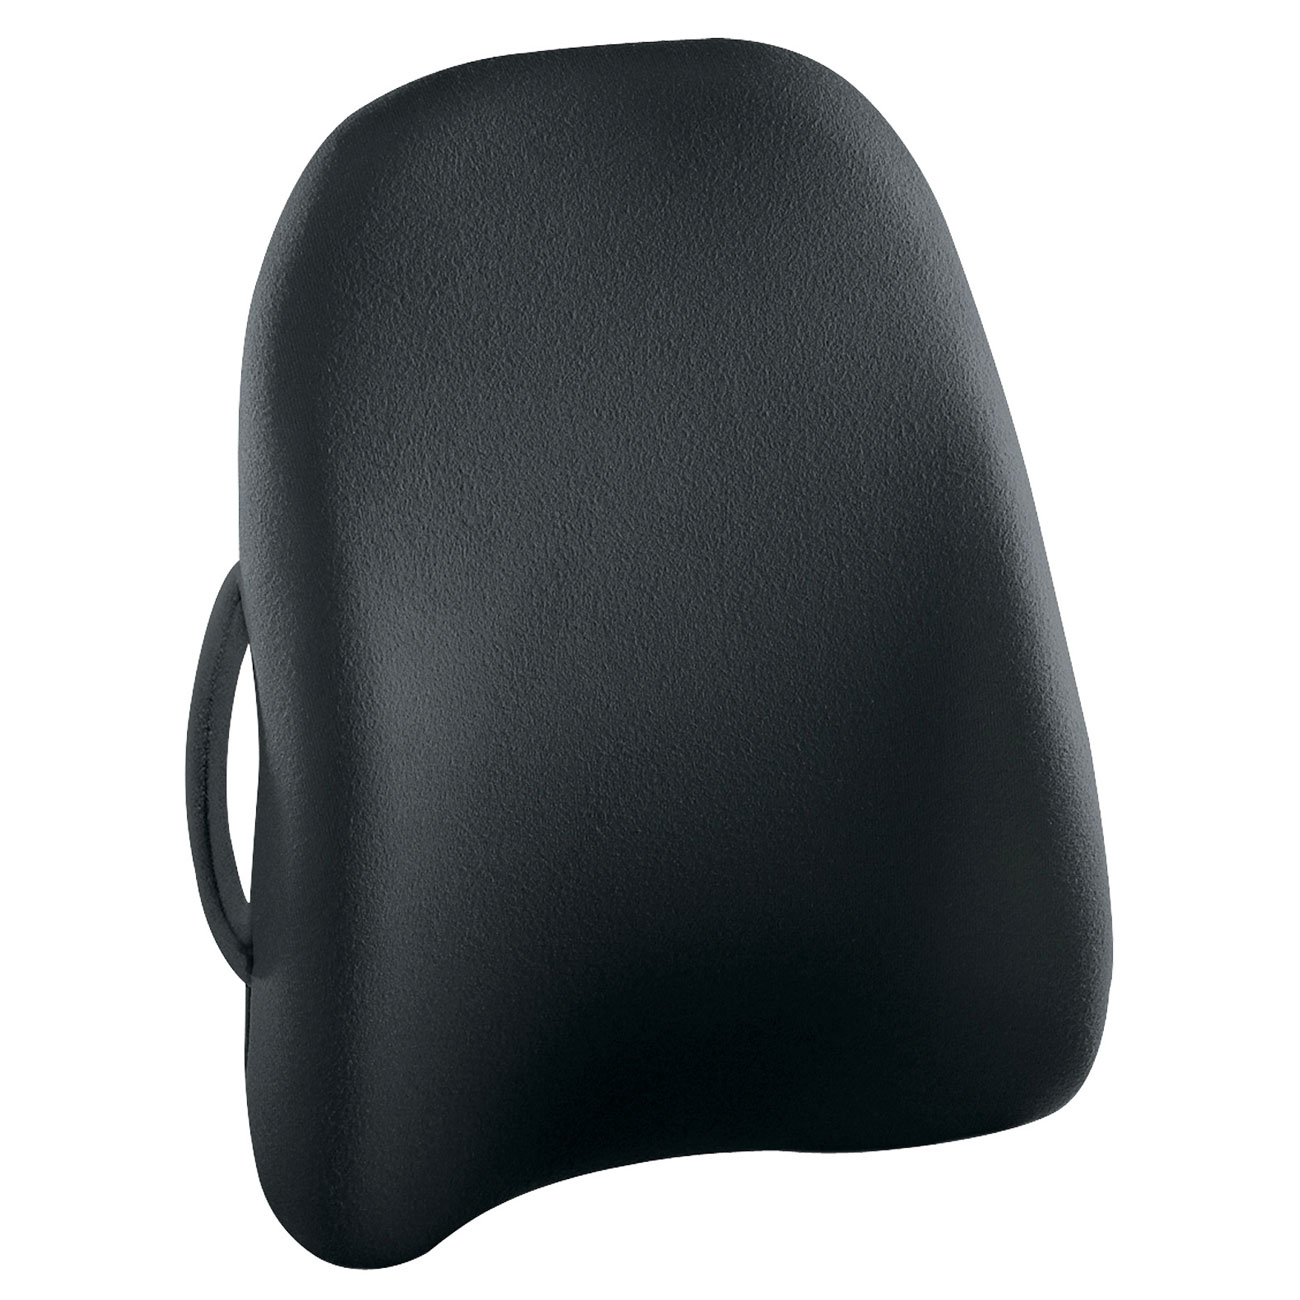 Replacement Cover for ObusForme Lowback Backrest Support - Black